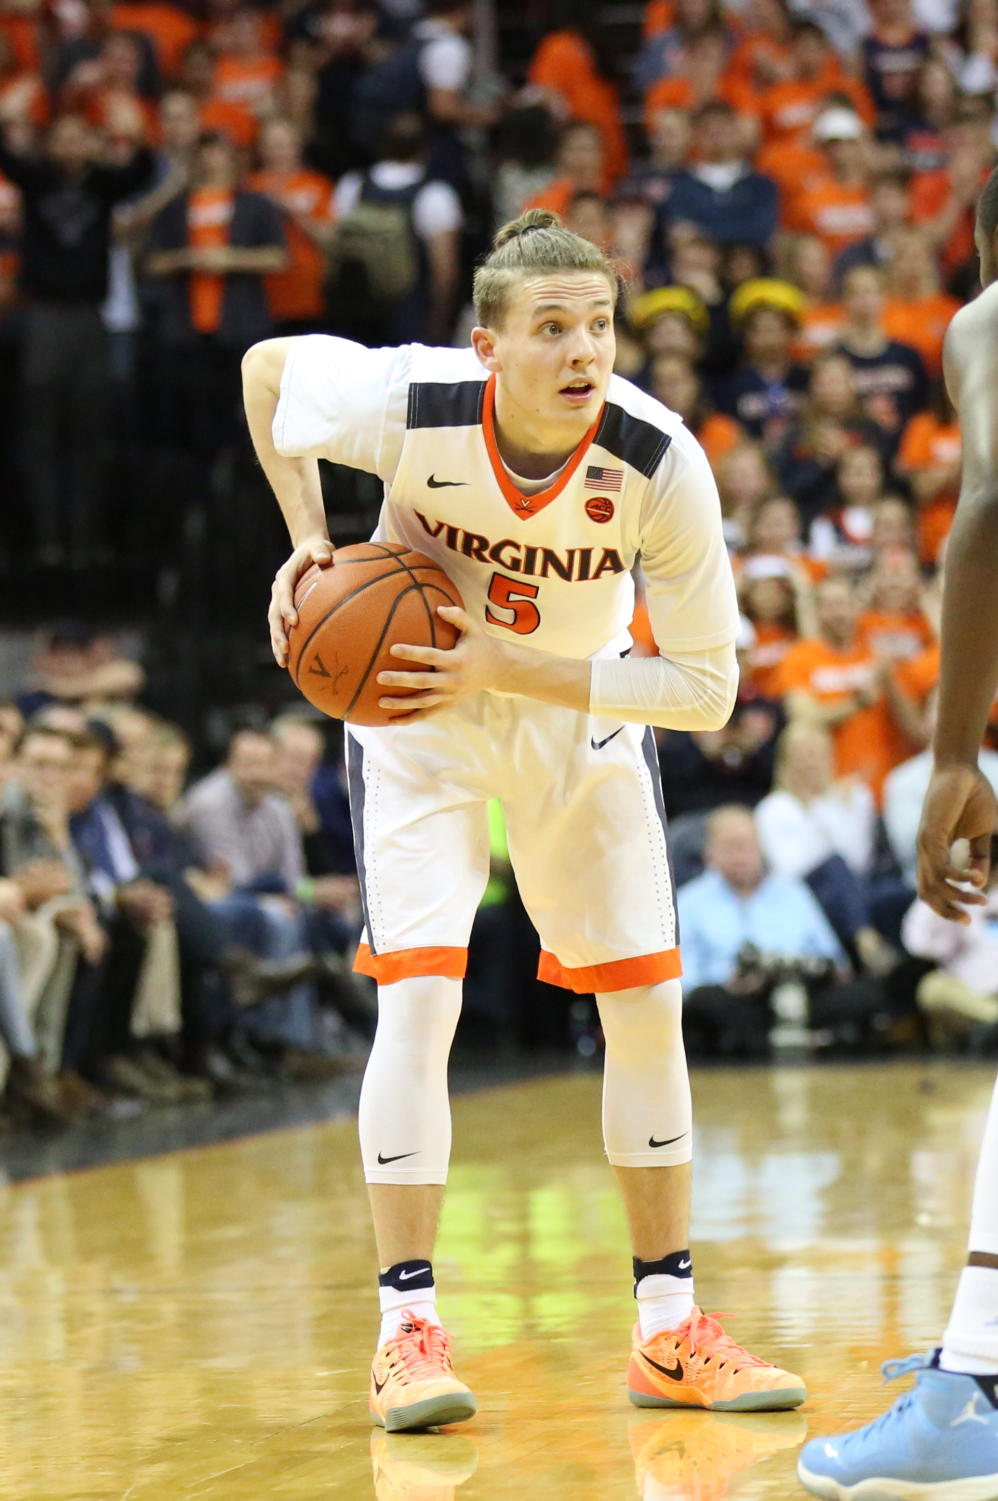 Virginia's Kyle Guy holds the ball on an offensive possession. Guy has been a key factor in UVA's success this season.